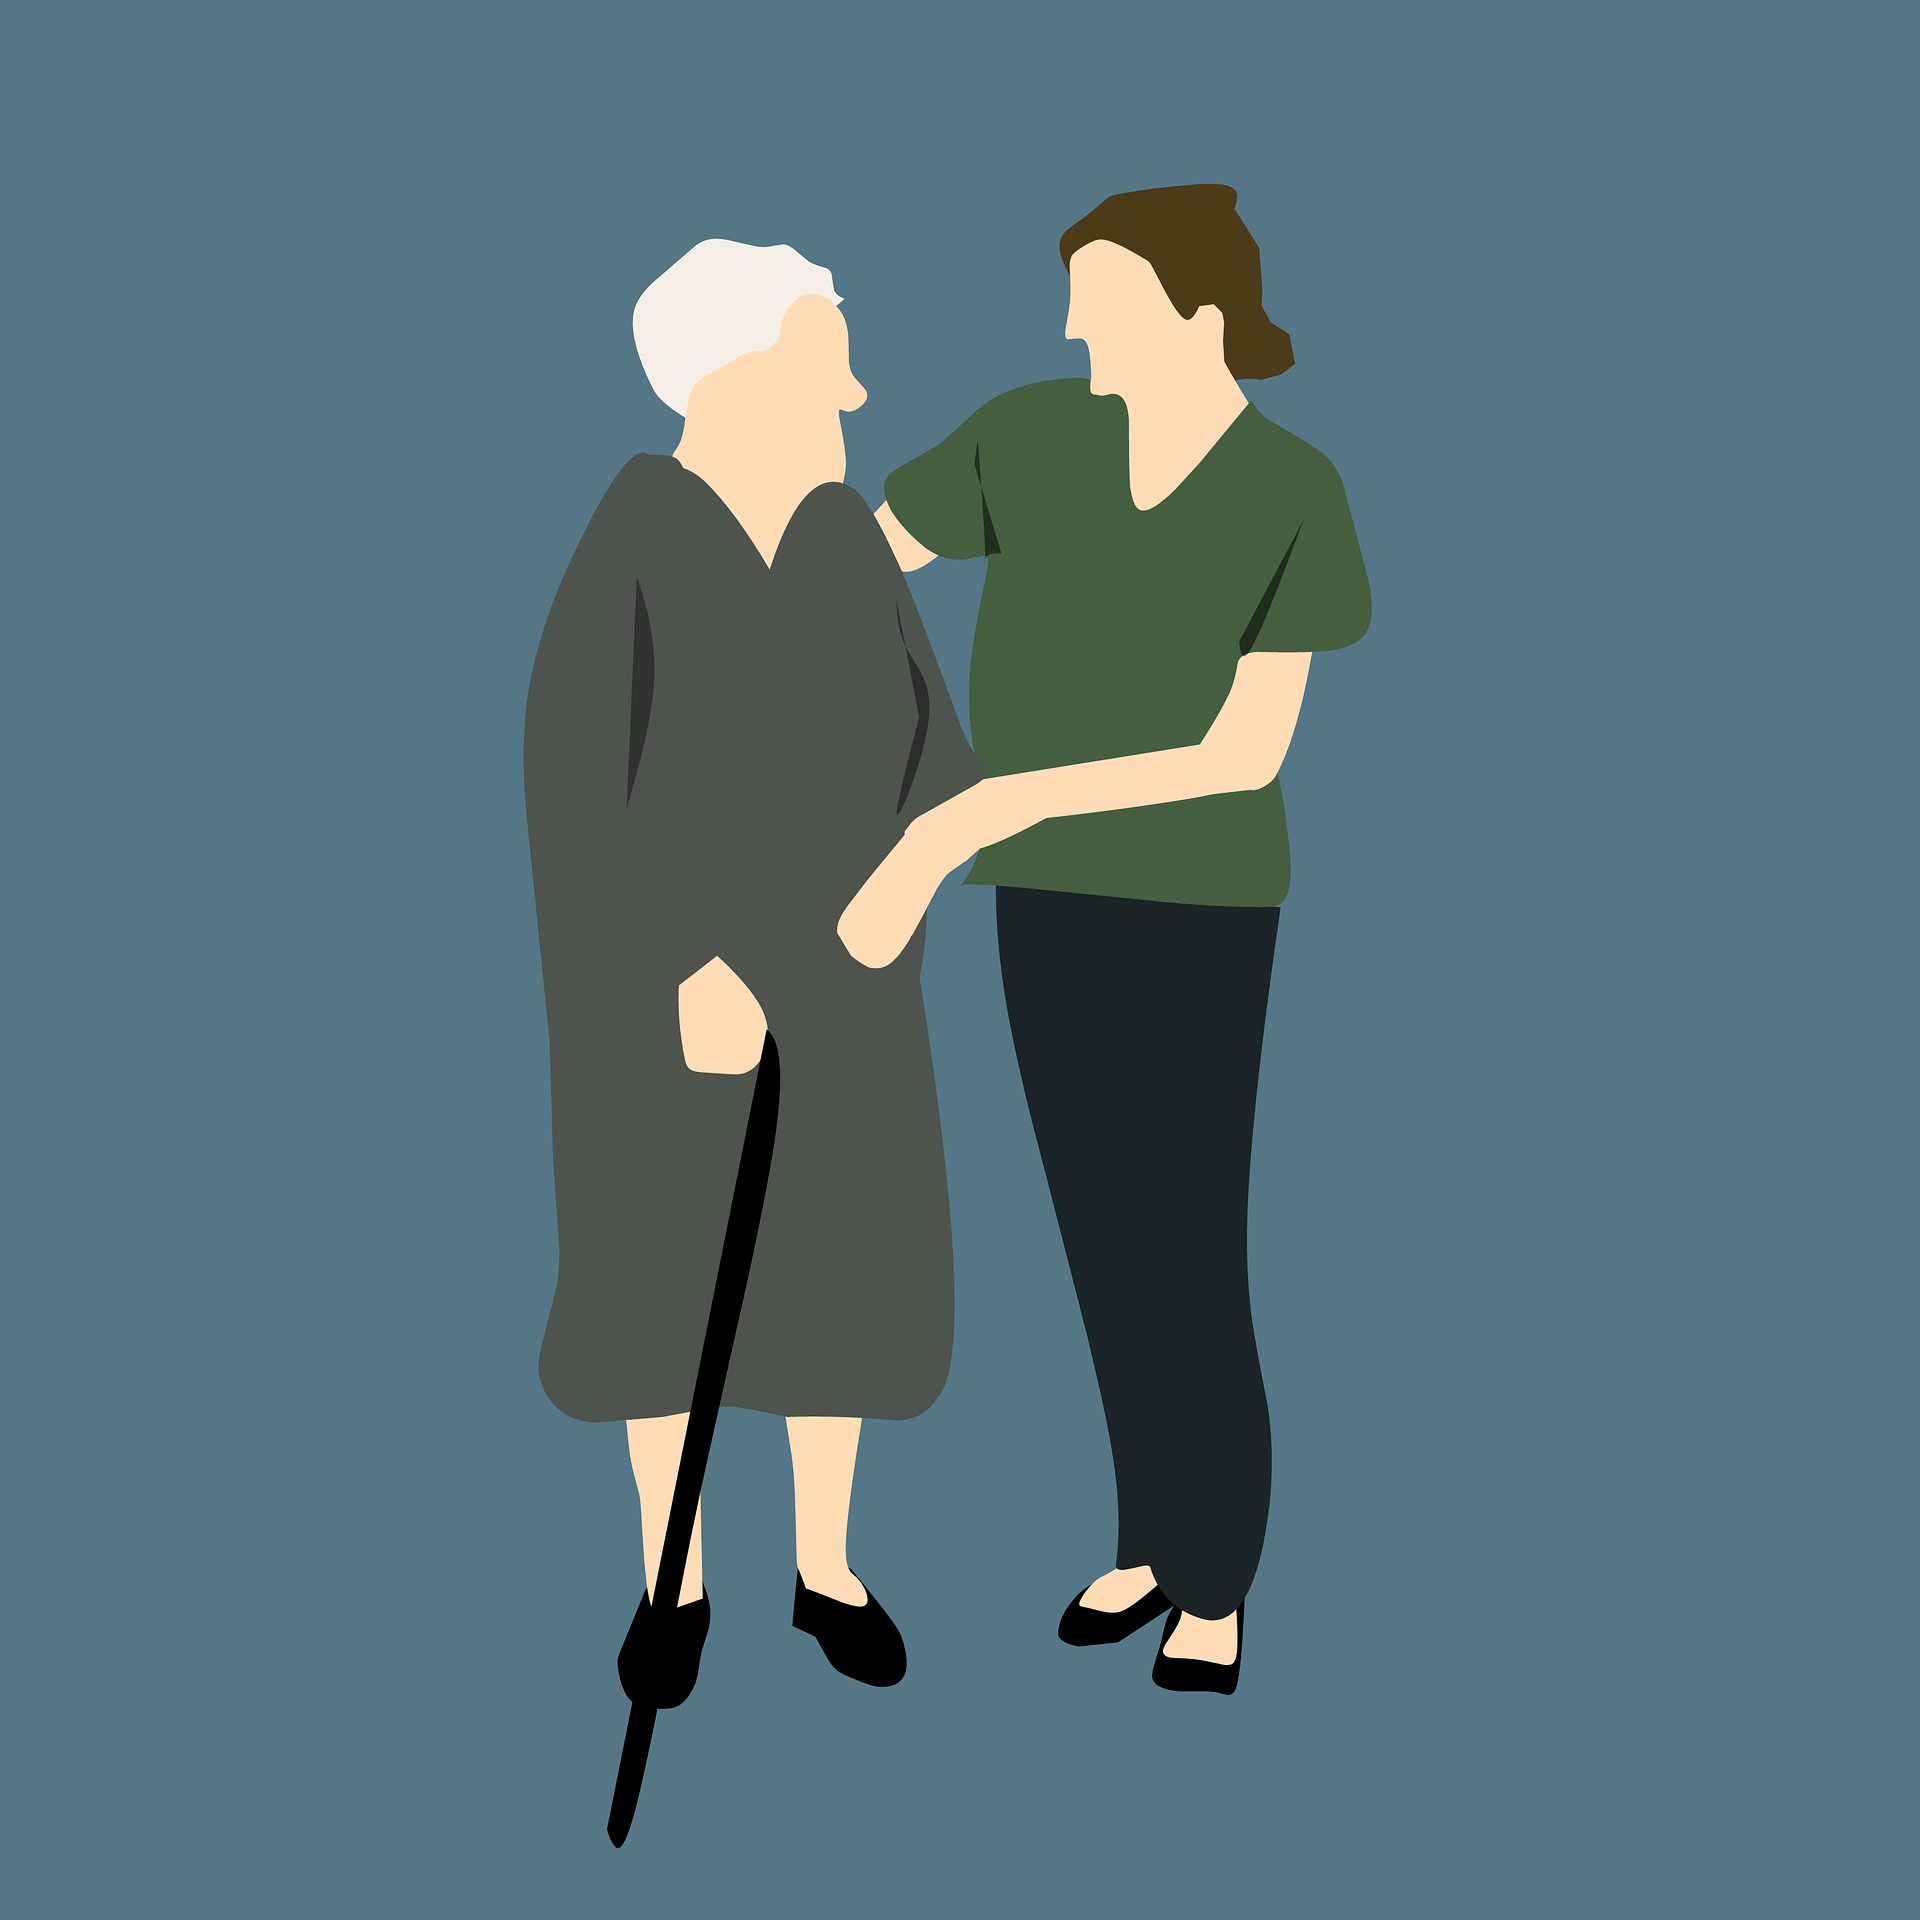 direct care workforce helping elderly lady